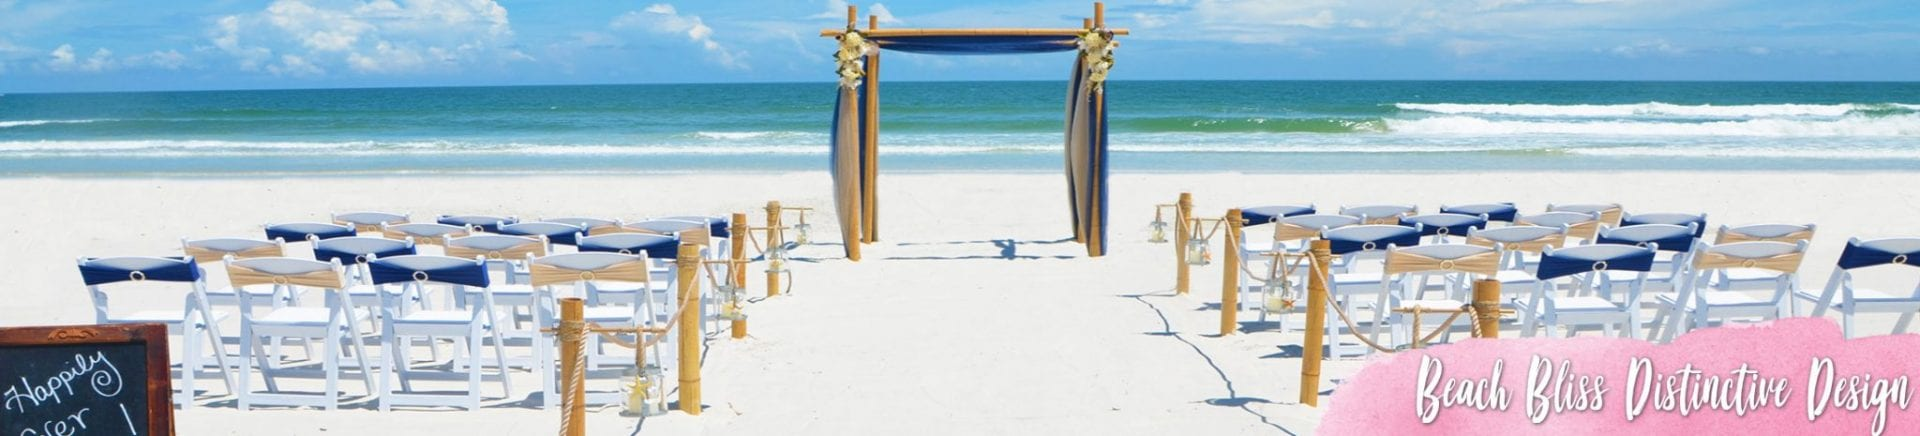 Beach wedding blue seaside design with white chairs